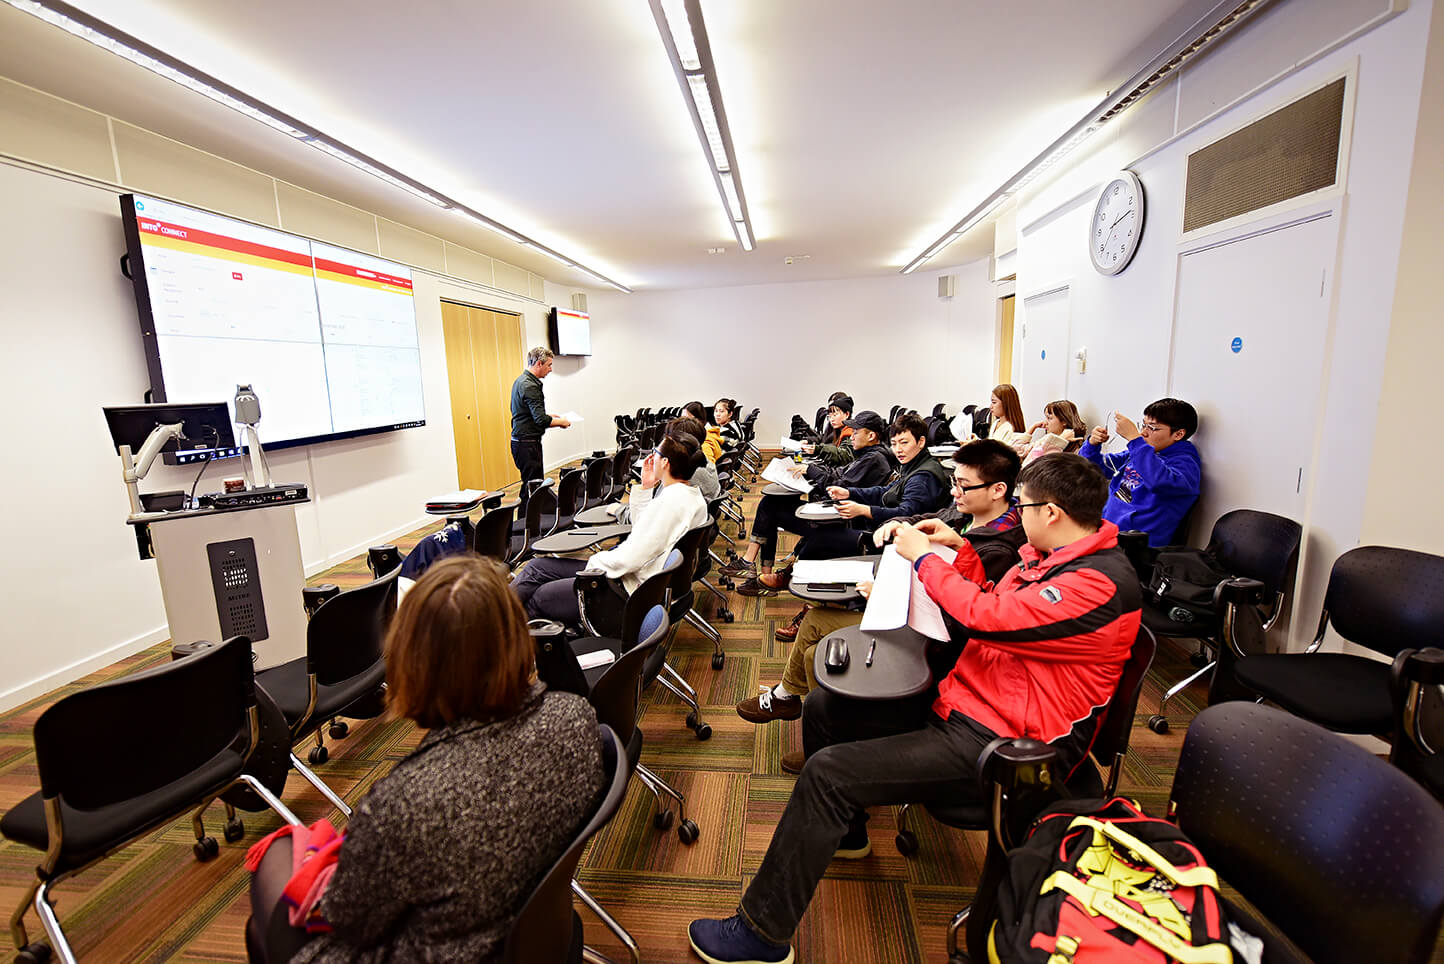 You'll have lecture-style classes in the INTO Centre to prepare you for university